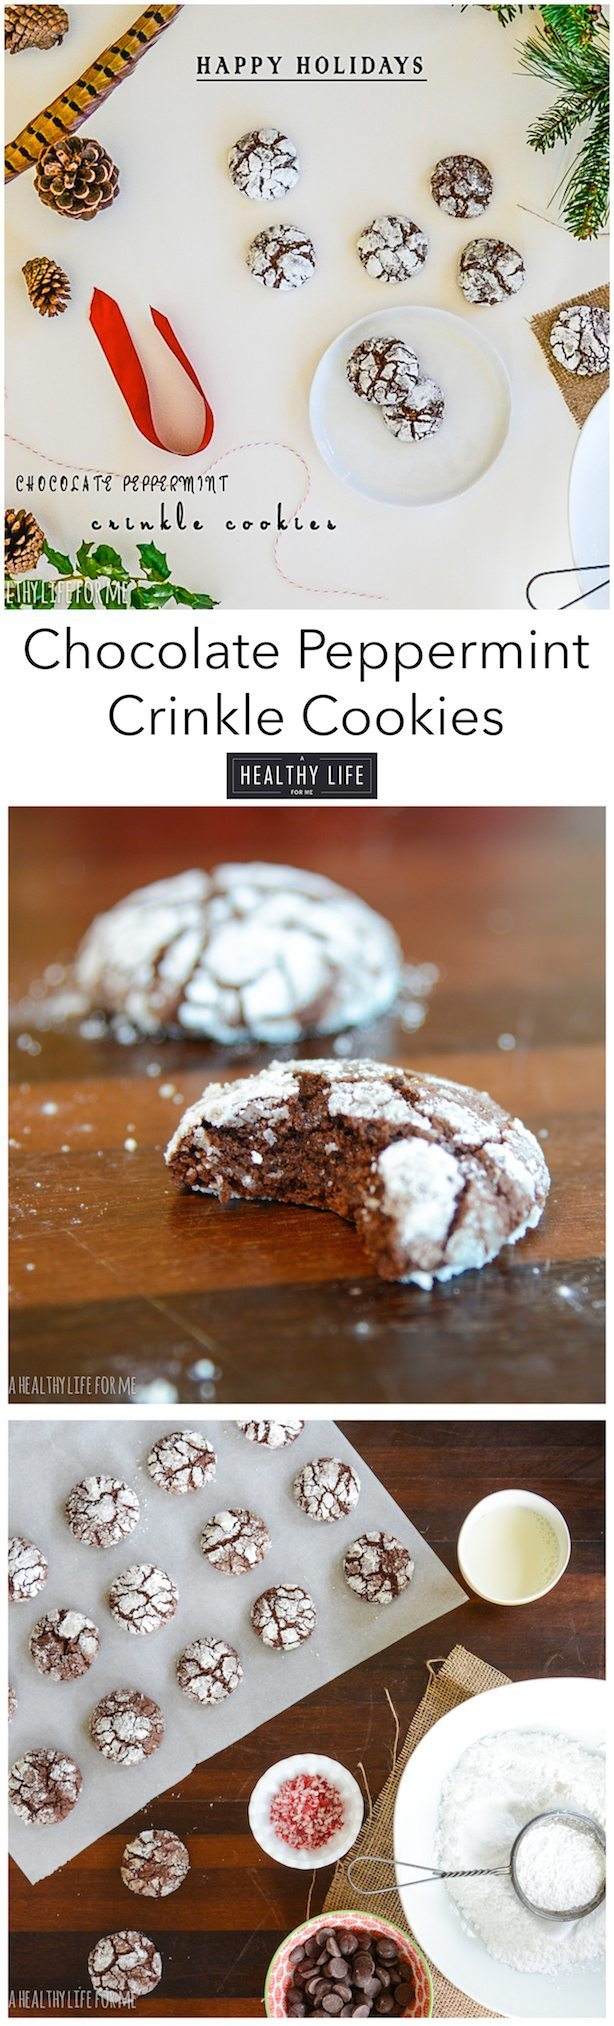 Chocolate Peppermint Crinkle cookies the classic holiday cookie recipe | ahealthylifeforme.com